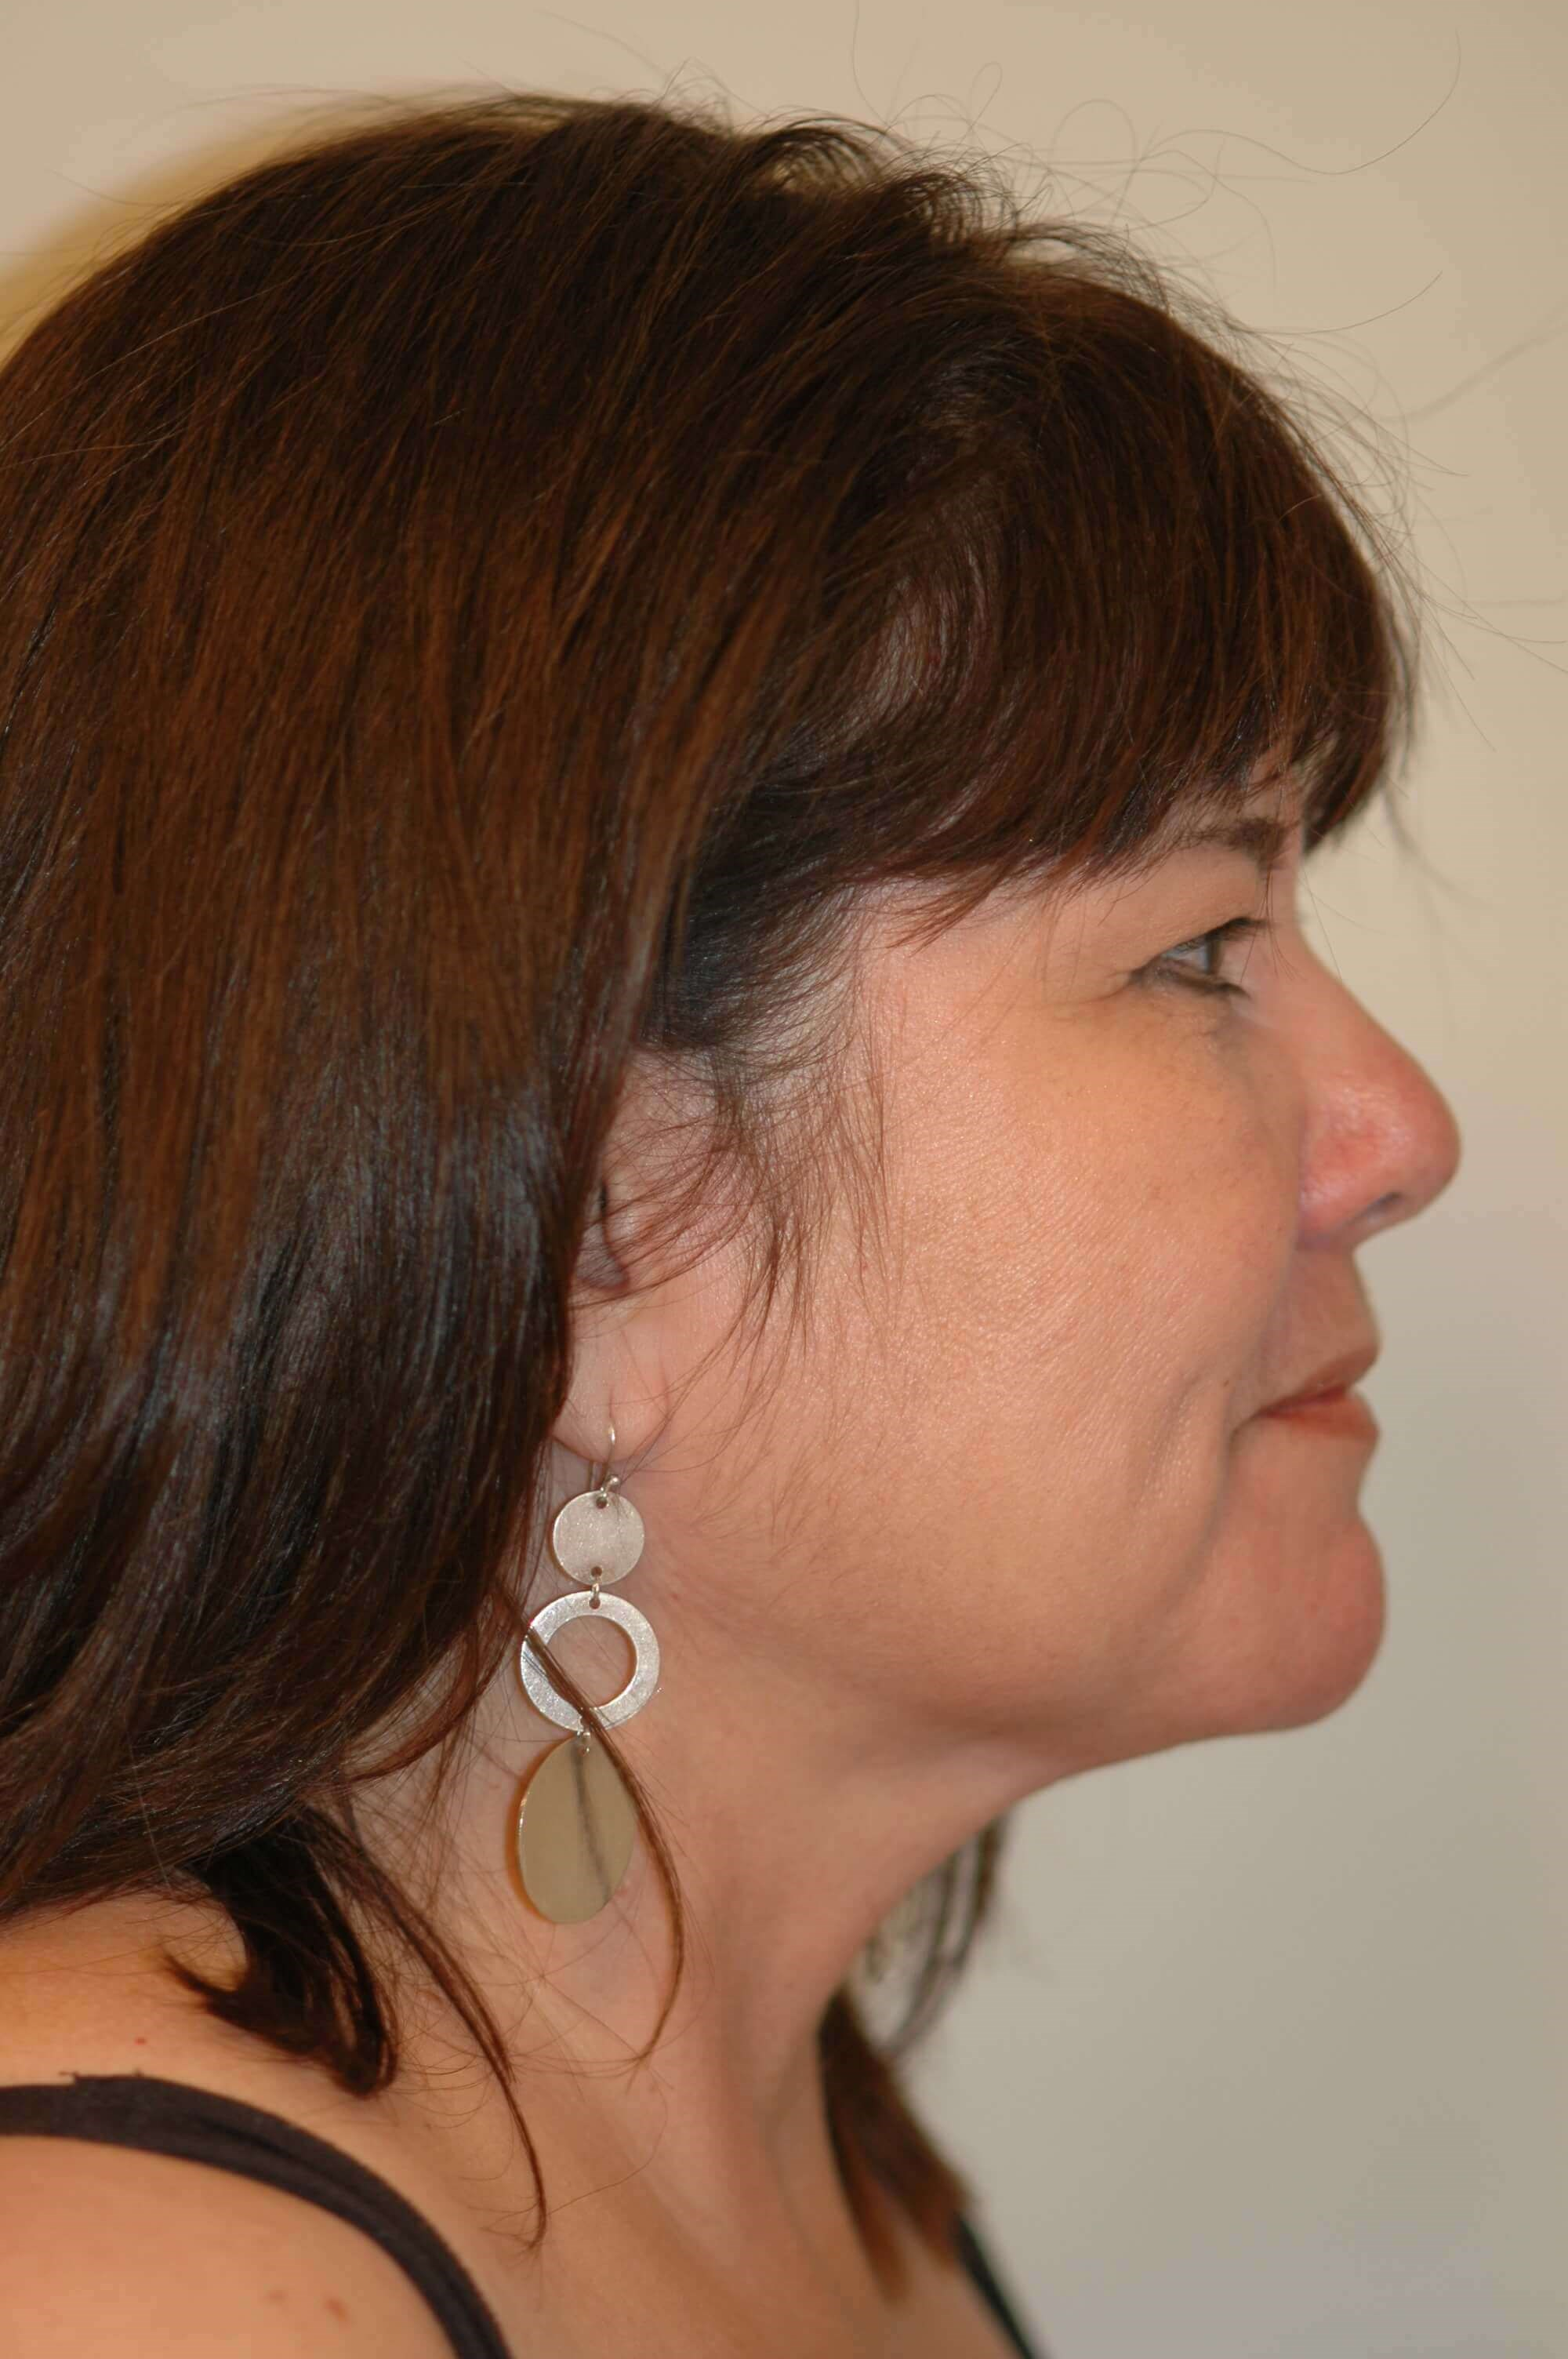 Neck Liposuction Side View After